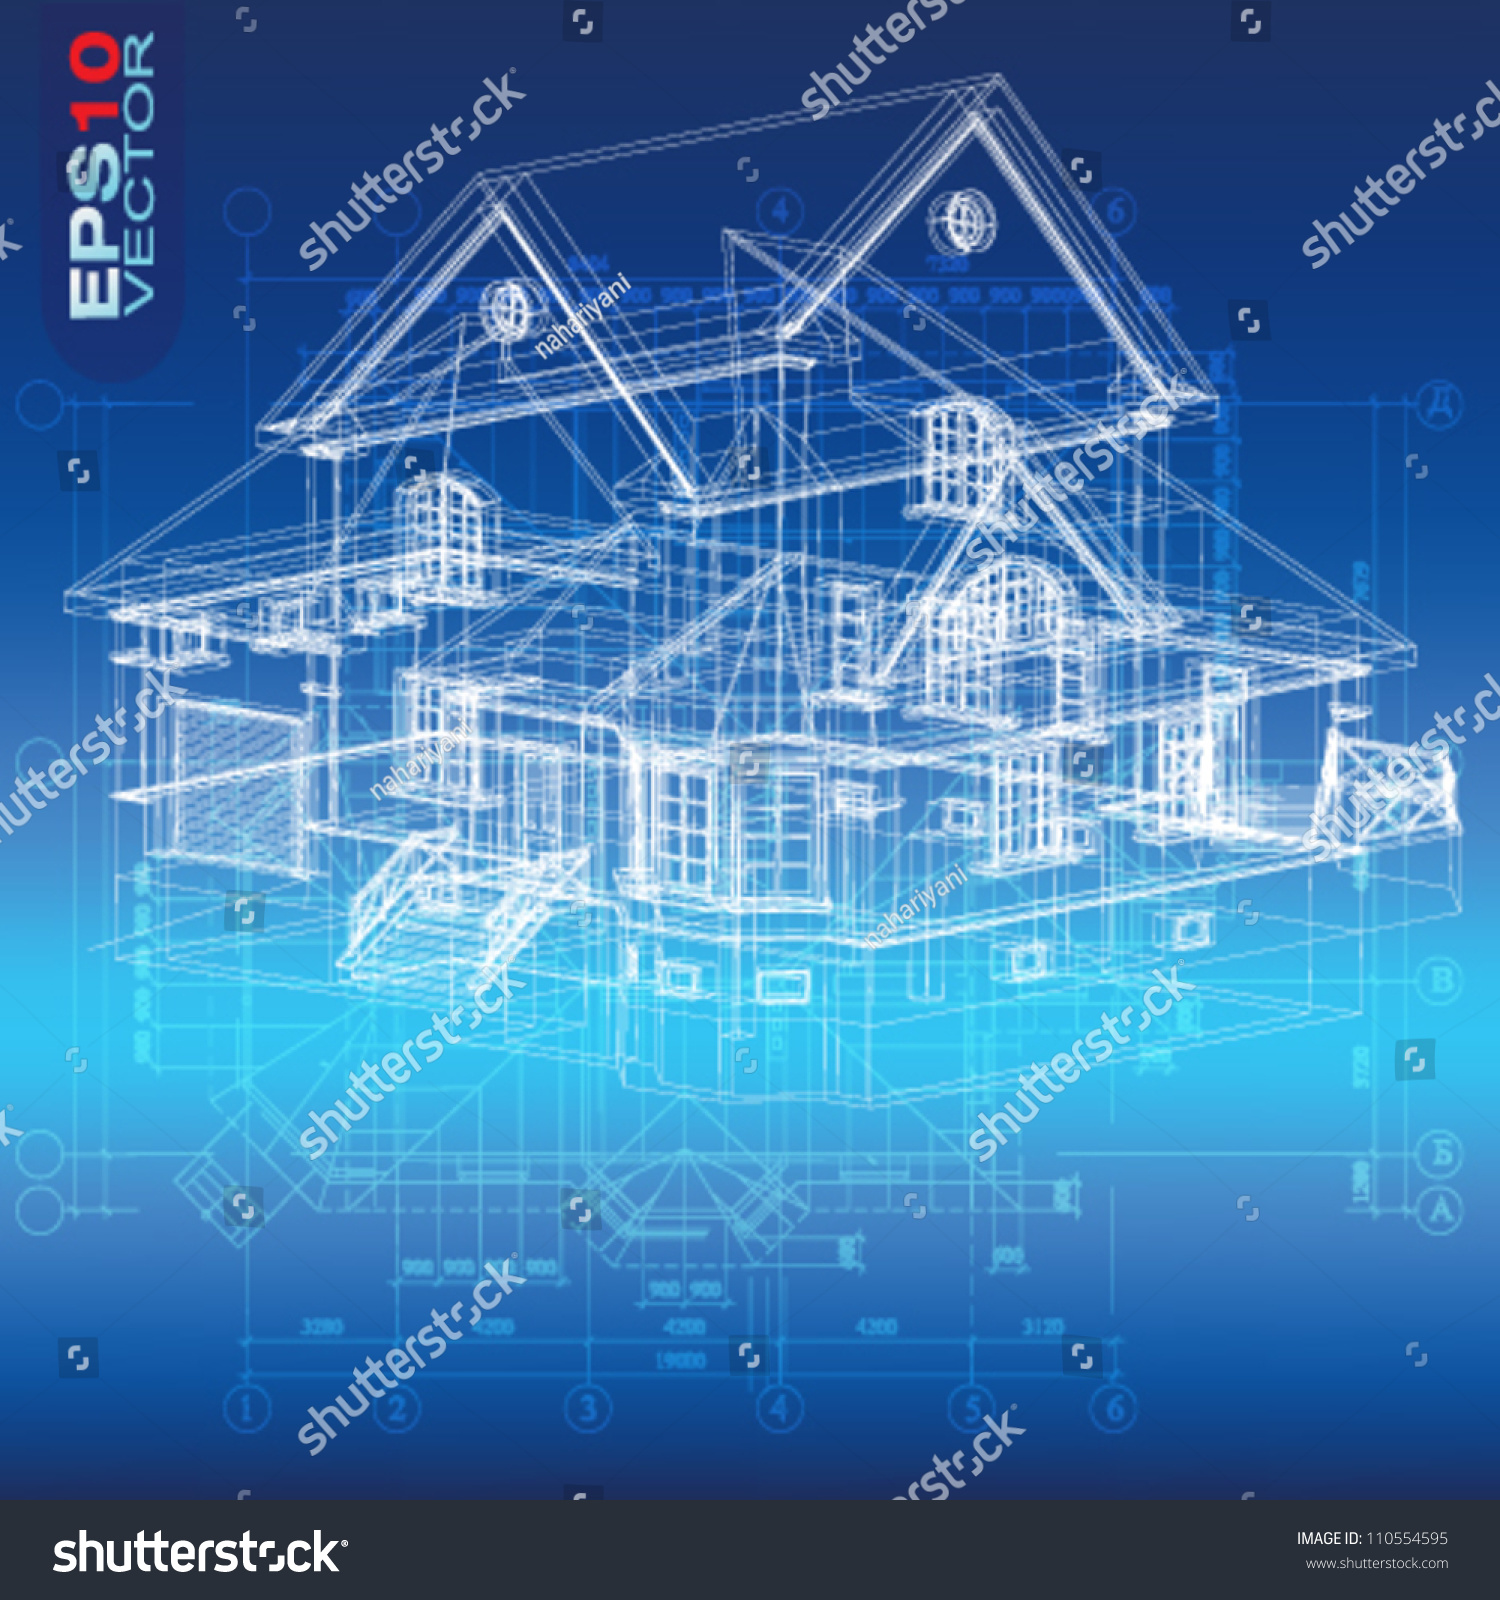 Urban Blueprint Vector Architectural Background Part Stock